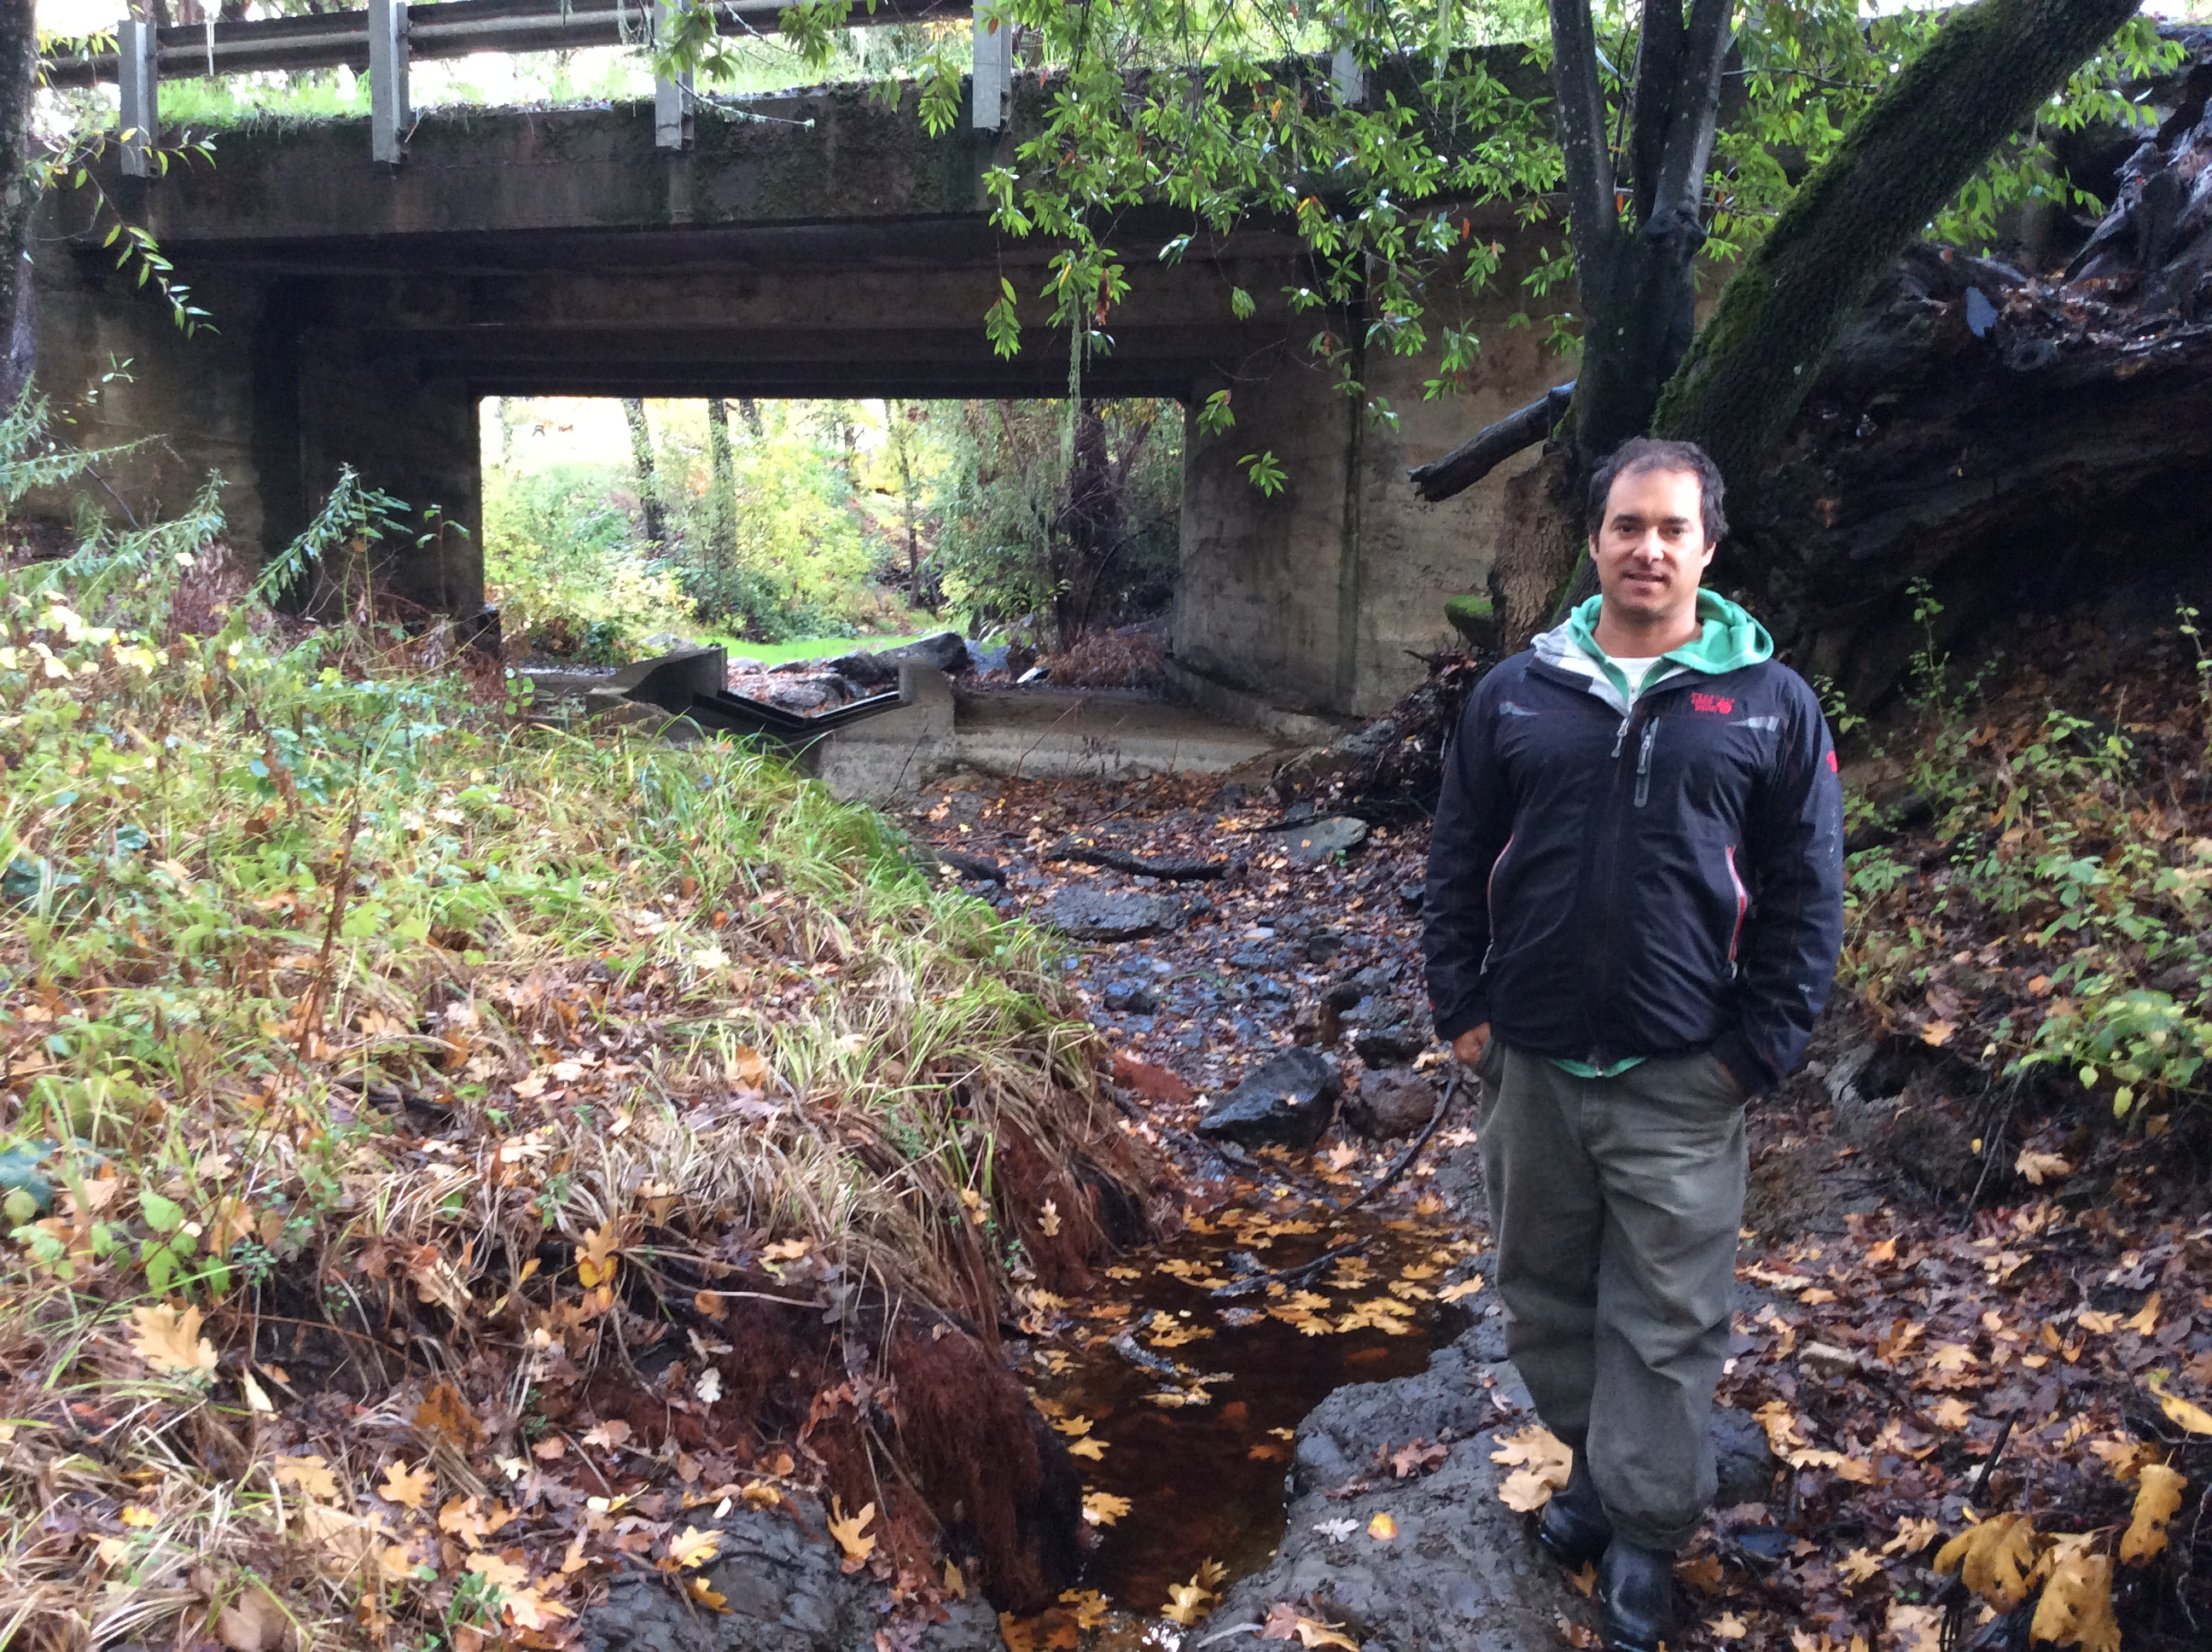 Martorana Family Winery winemaker Gio Martorana standing in the creek he helped restore.